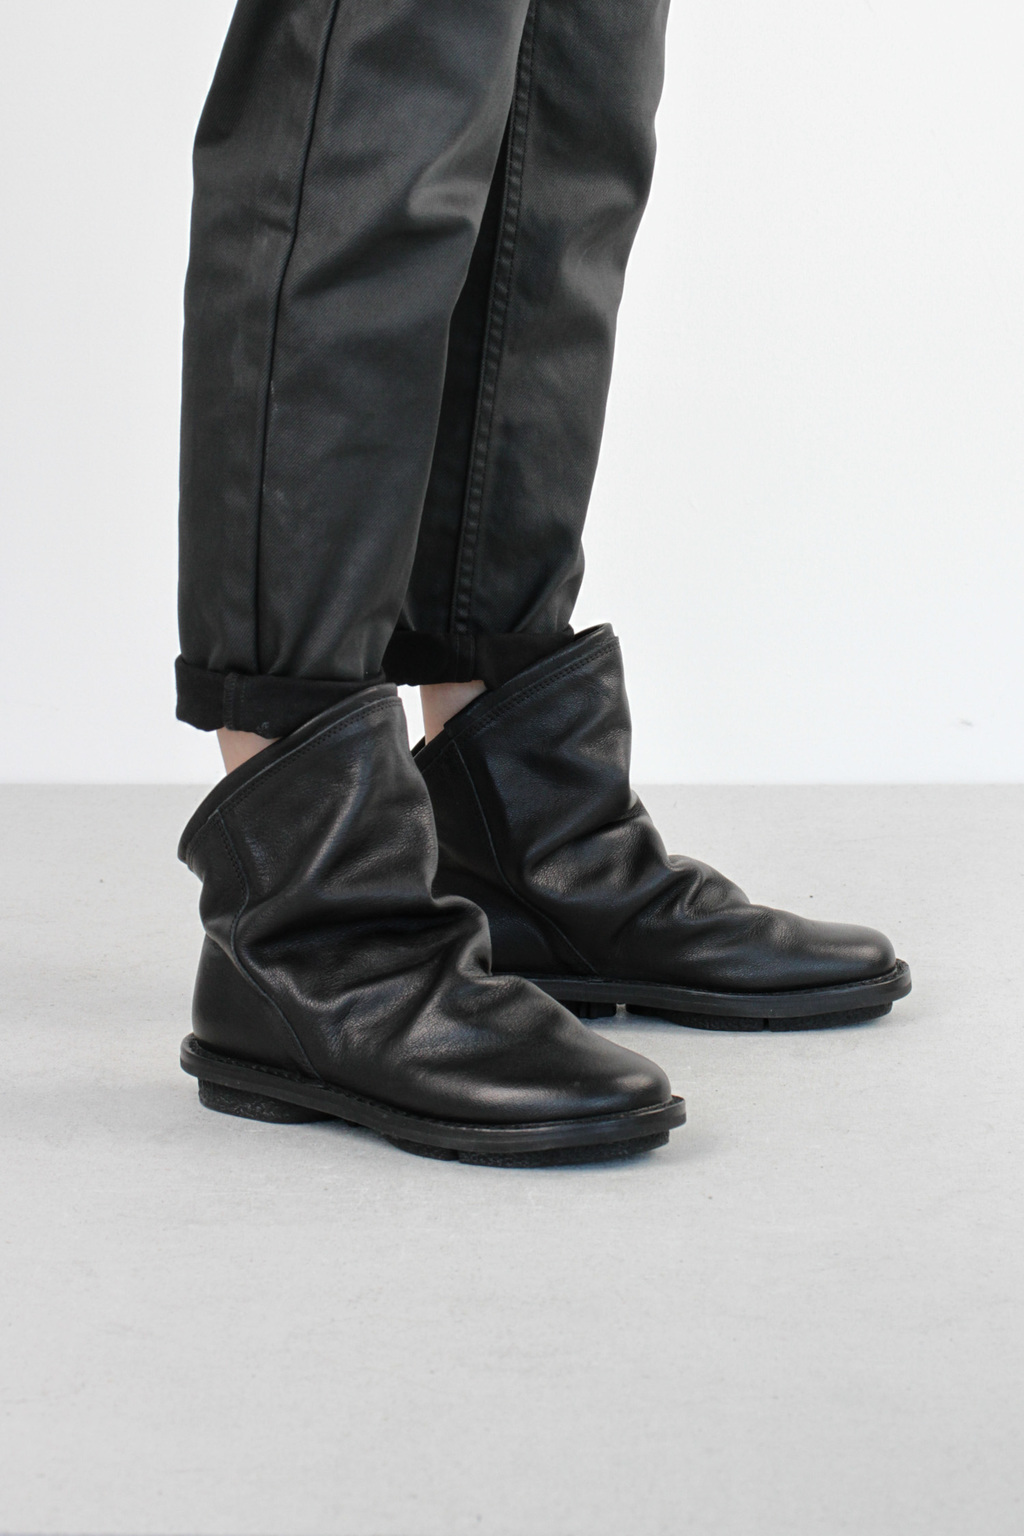 Trippen bomb f black buf leather boots5